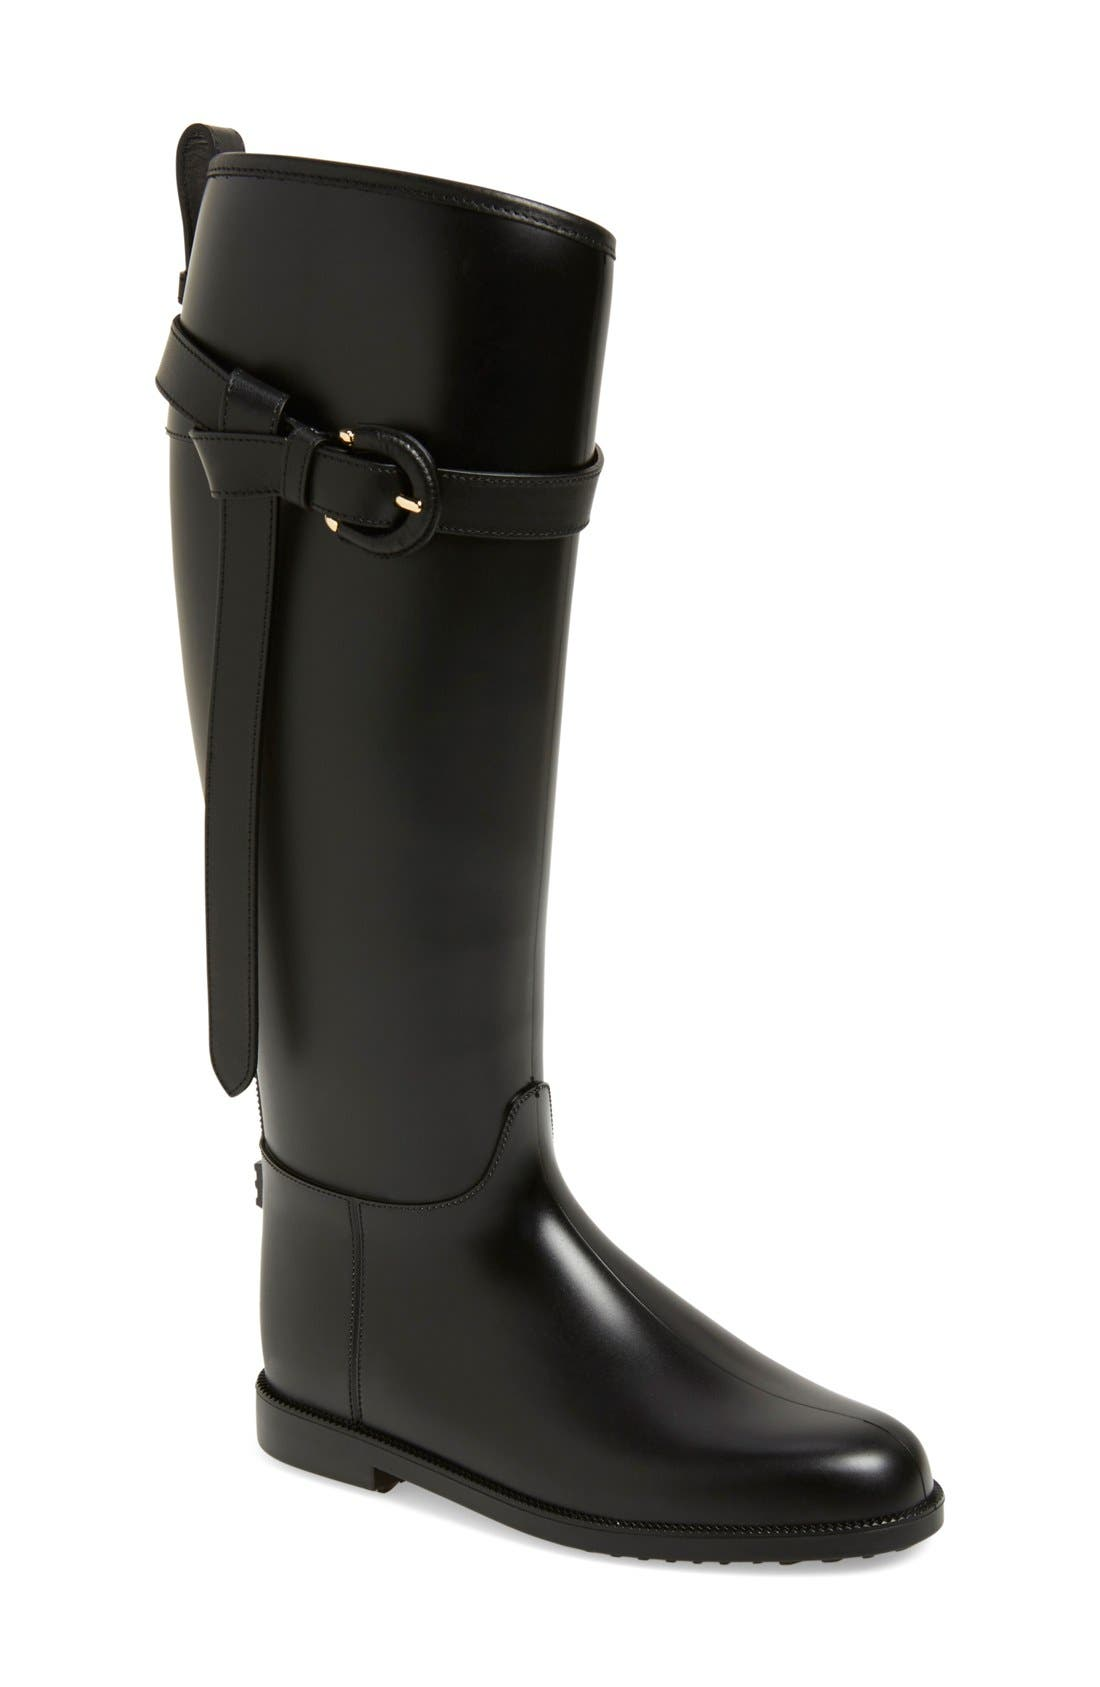 Main Image - Burberry Roscot Waterproof Riding Boot (Women)